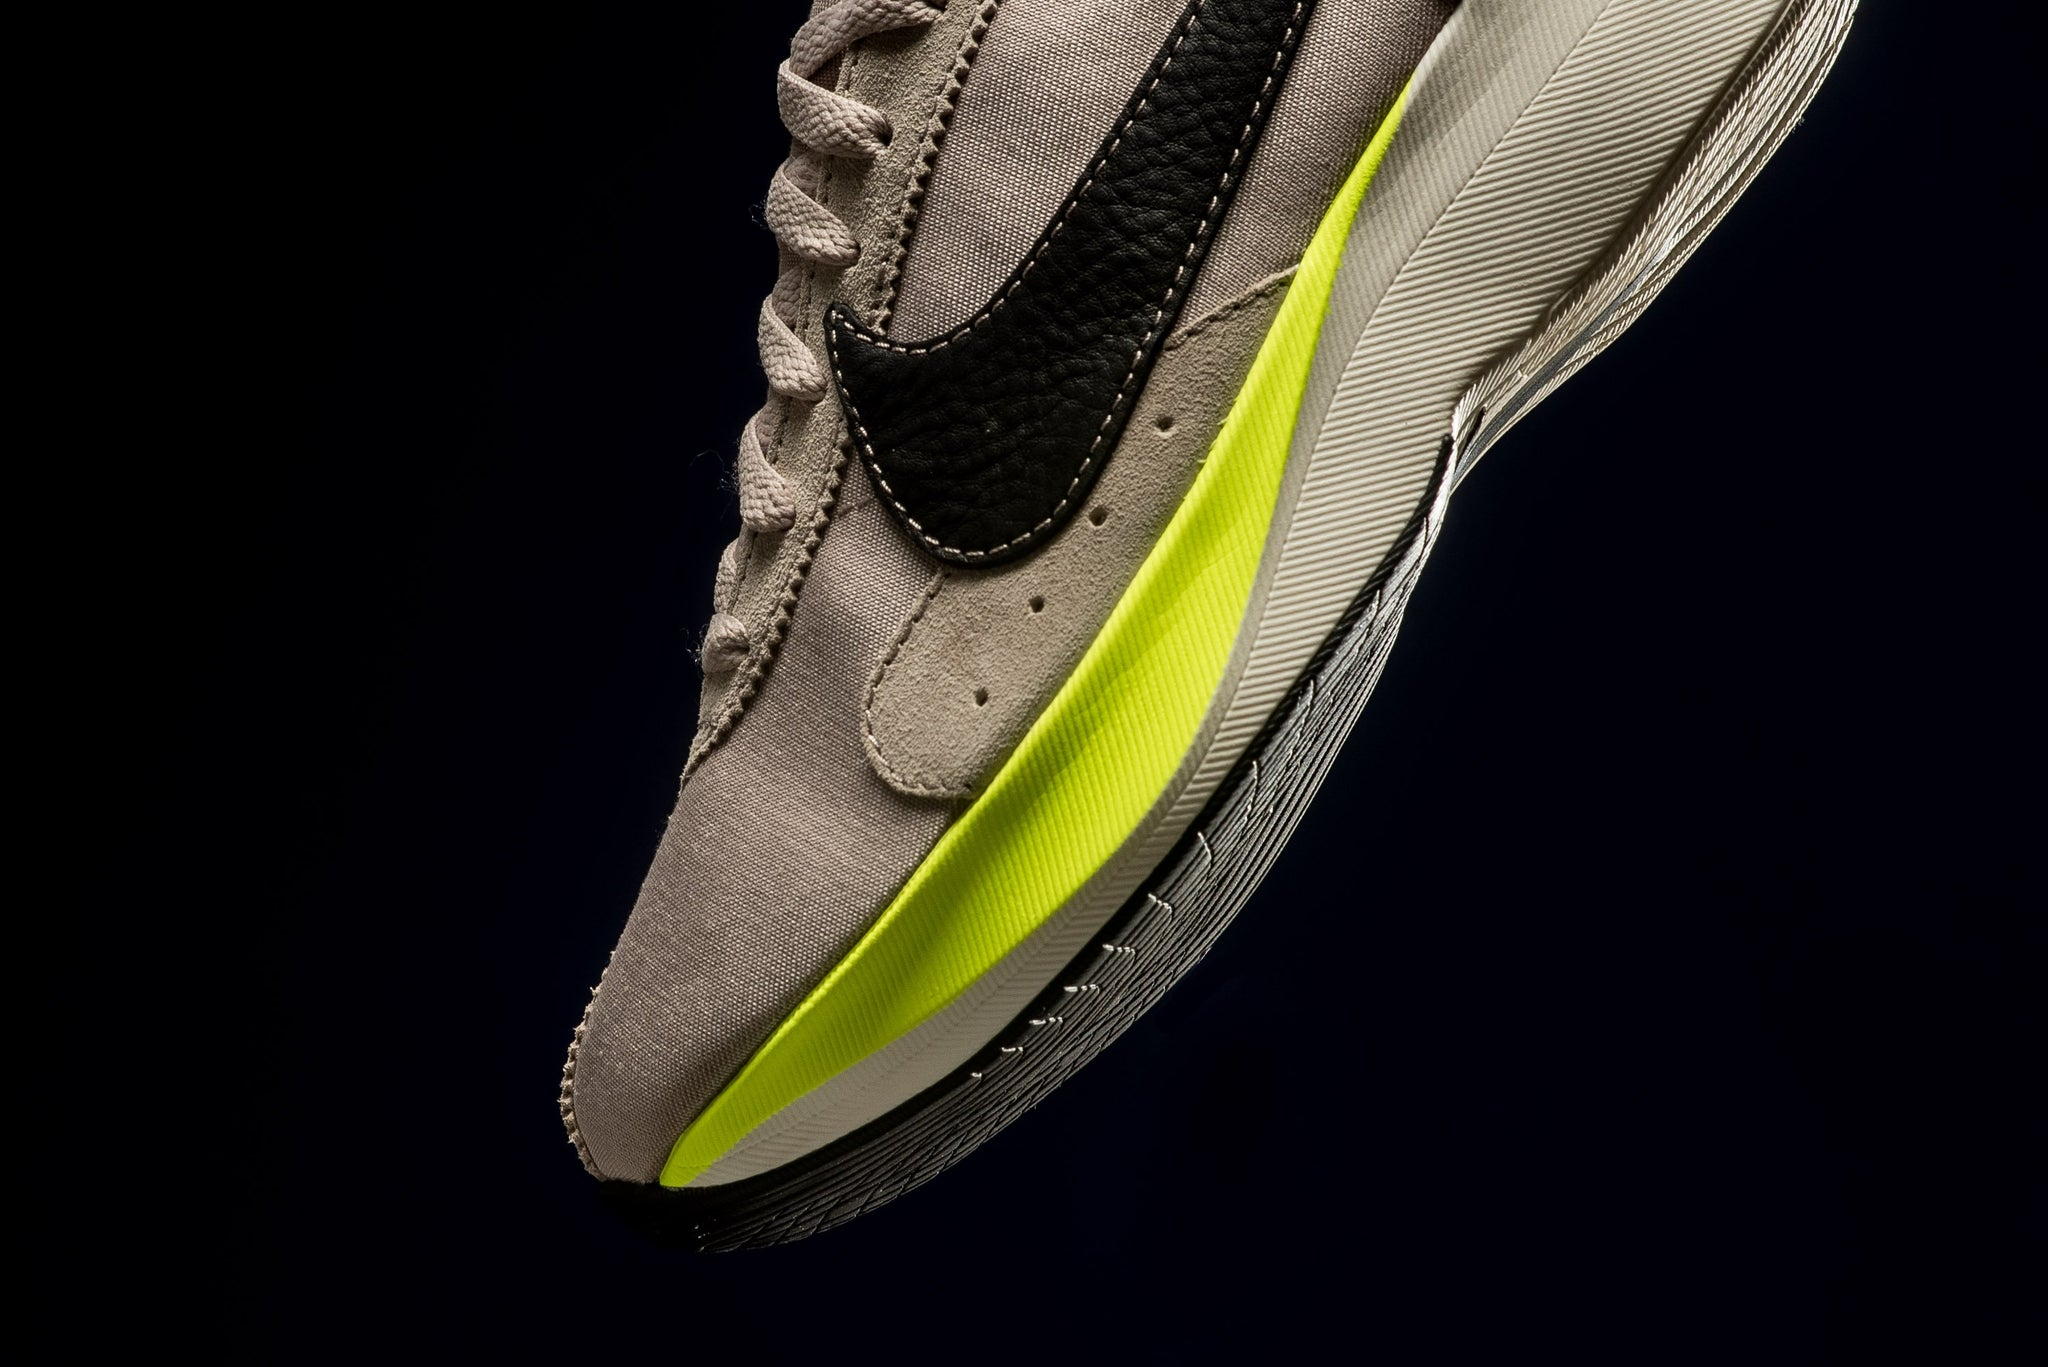 Nike Moon Racer - String/Black/Sail/Volt #AQ4121-200-Preorder Item-Navy Selected Shop